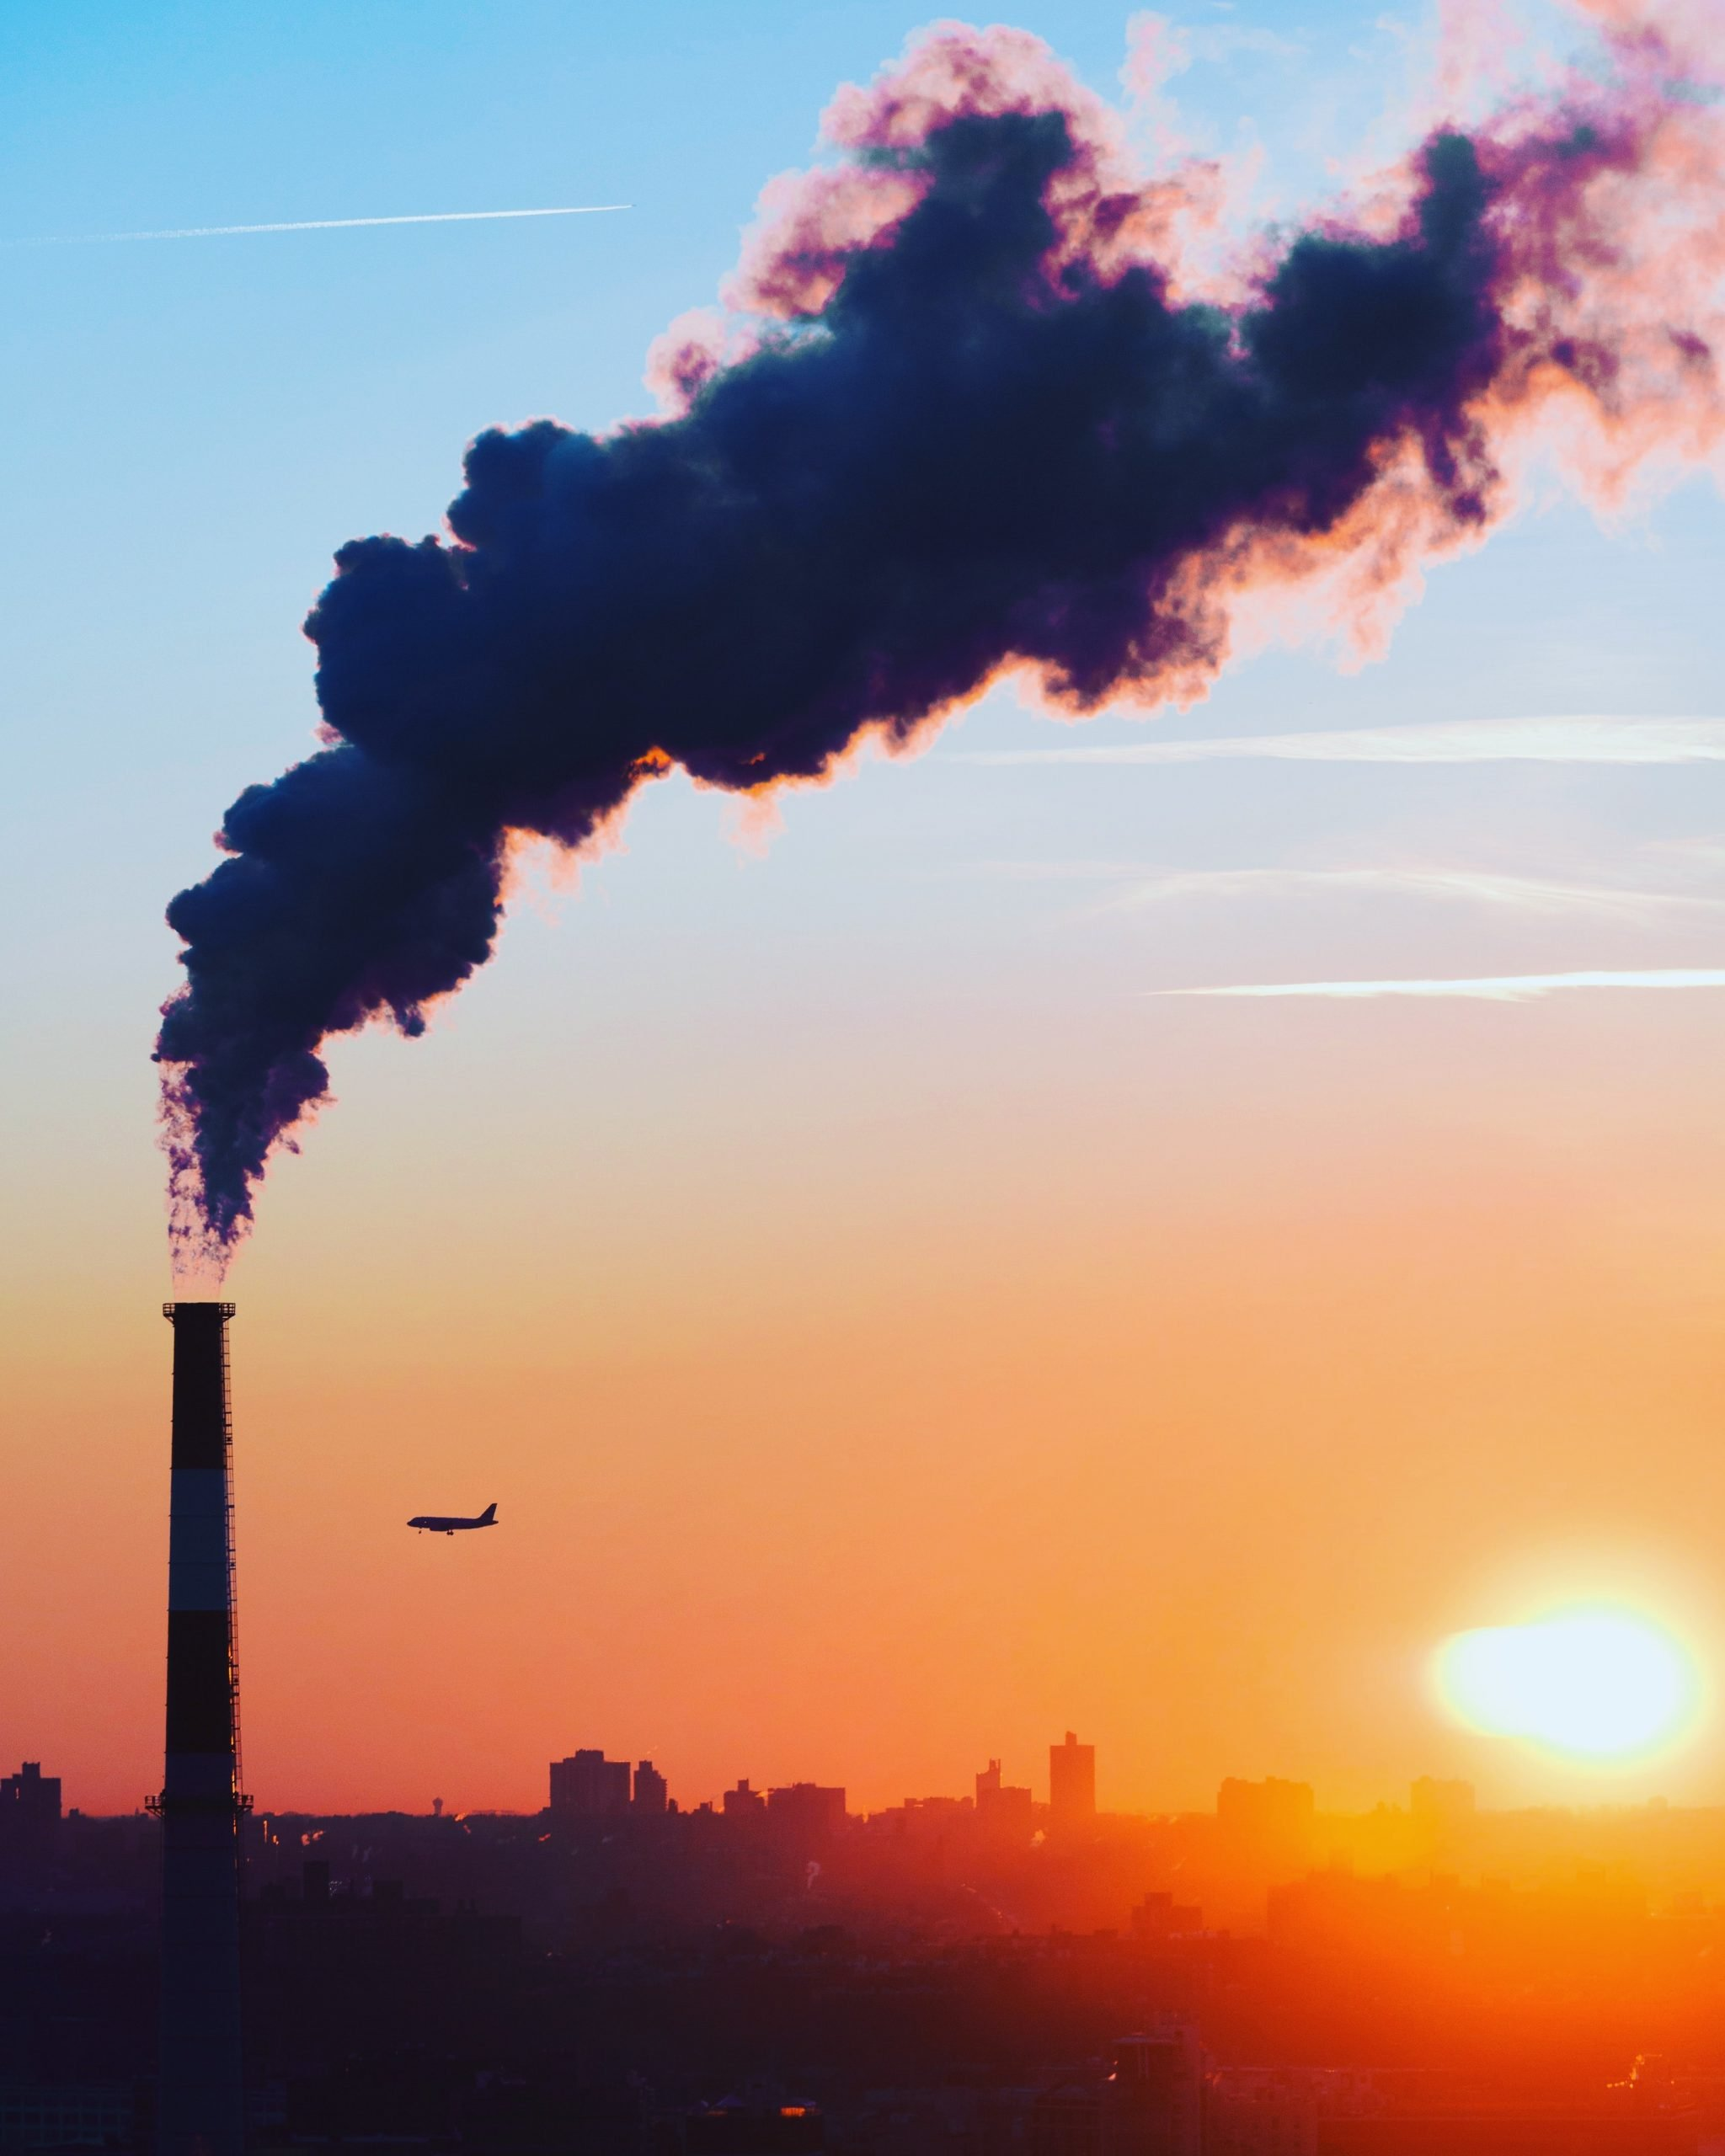 Environmental Changes around the World Amidst a Global Pandemic